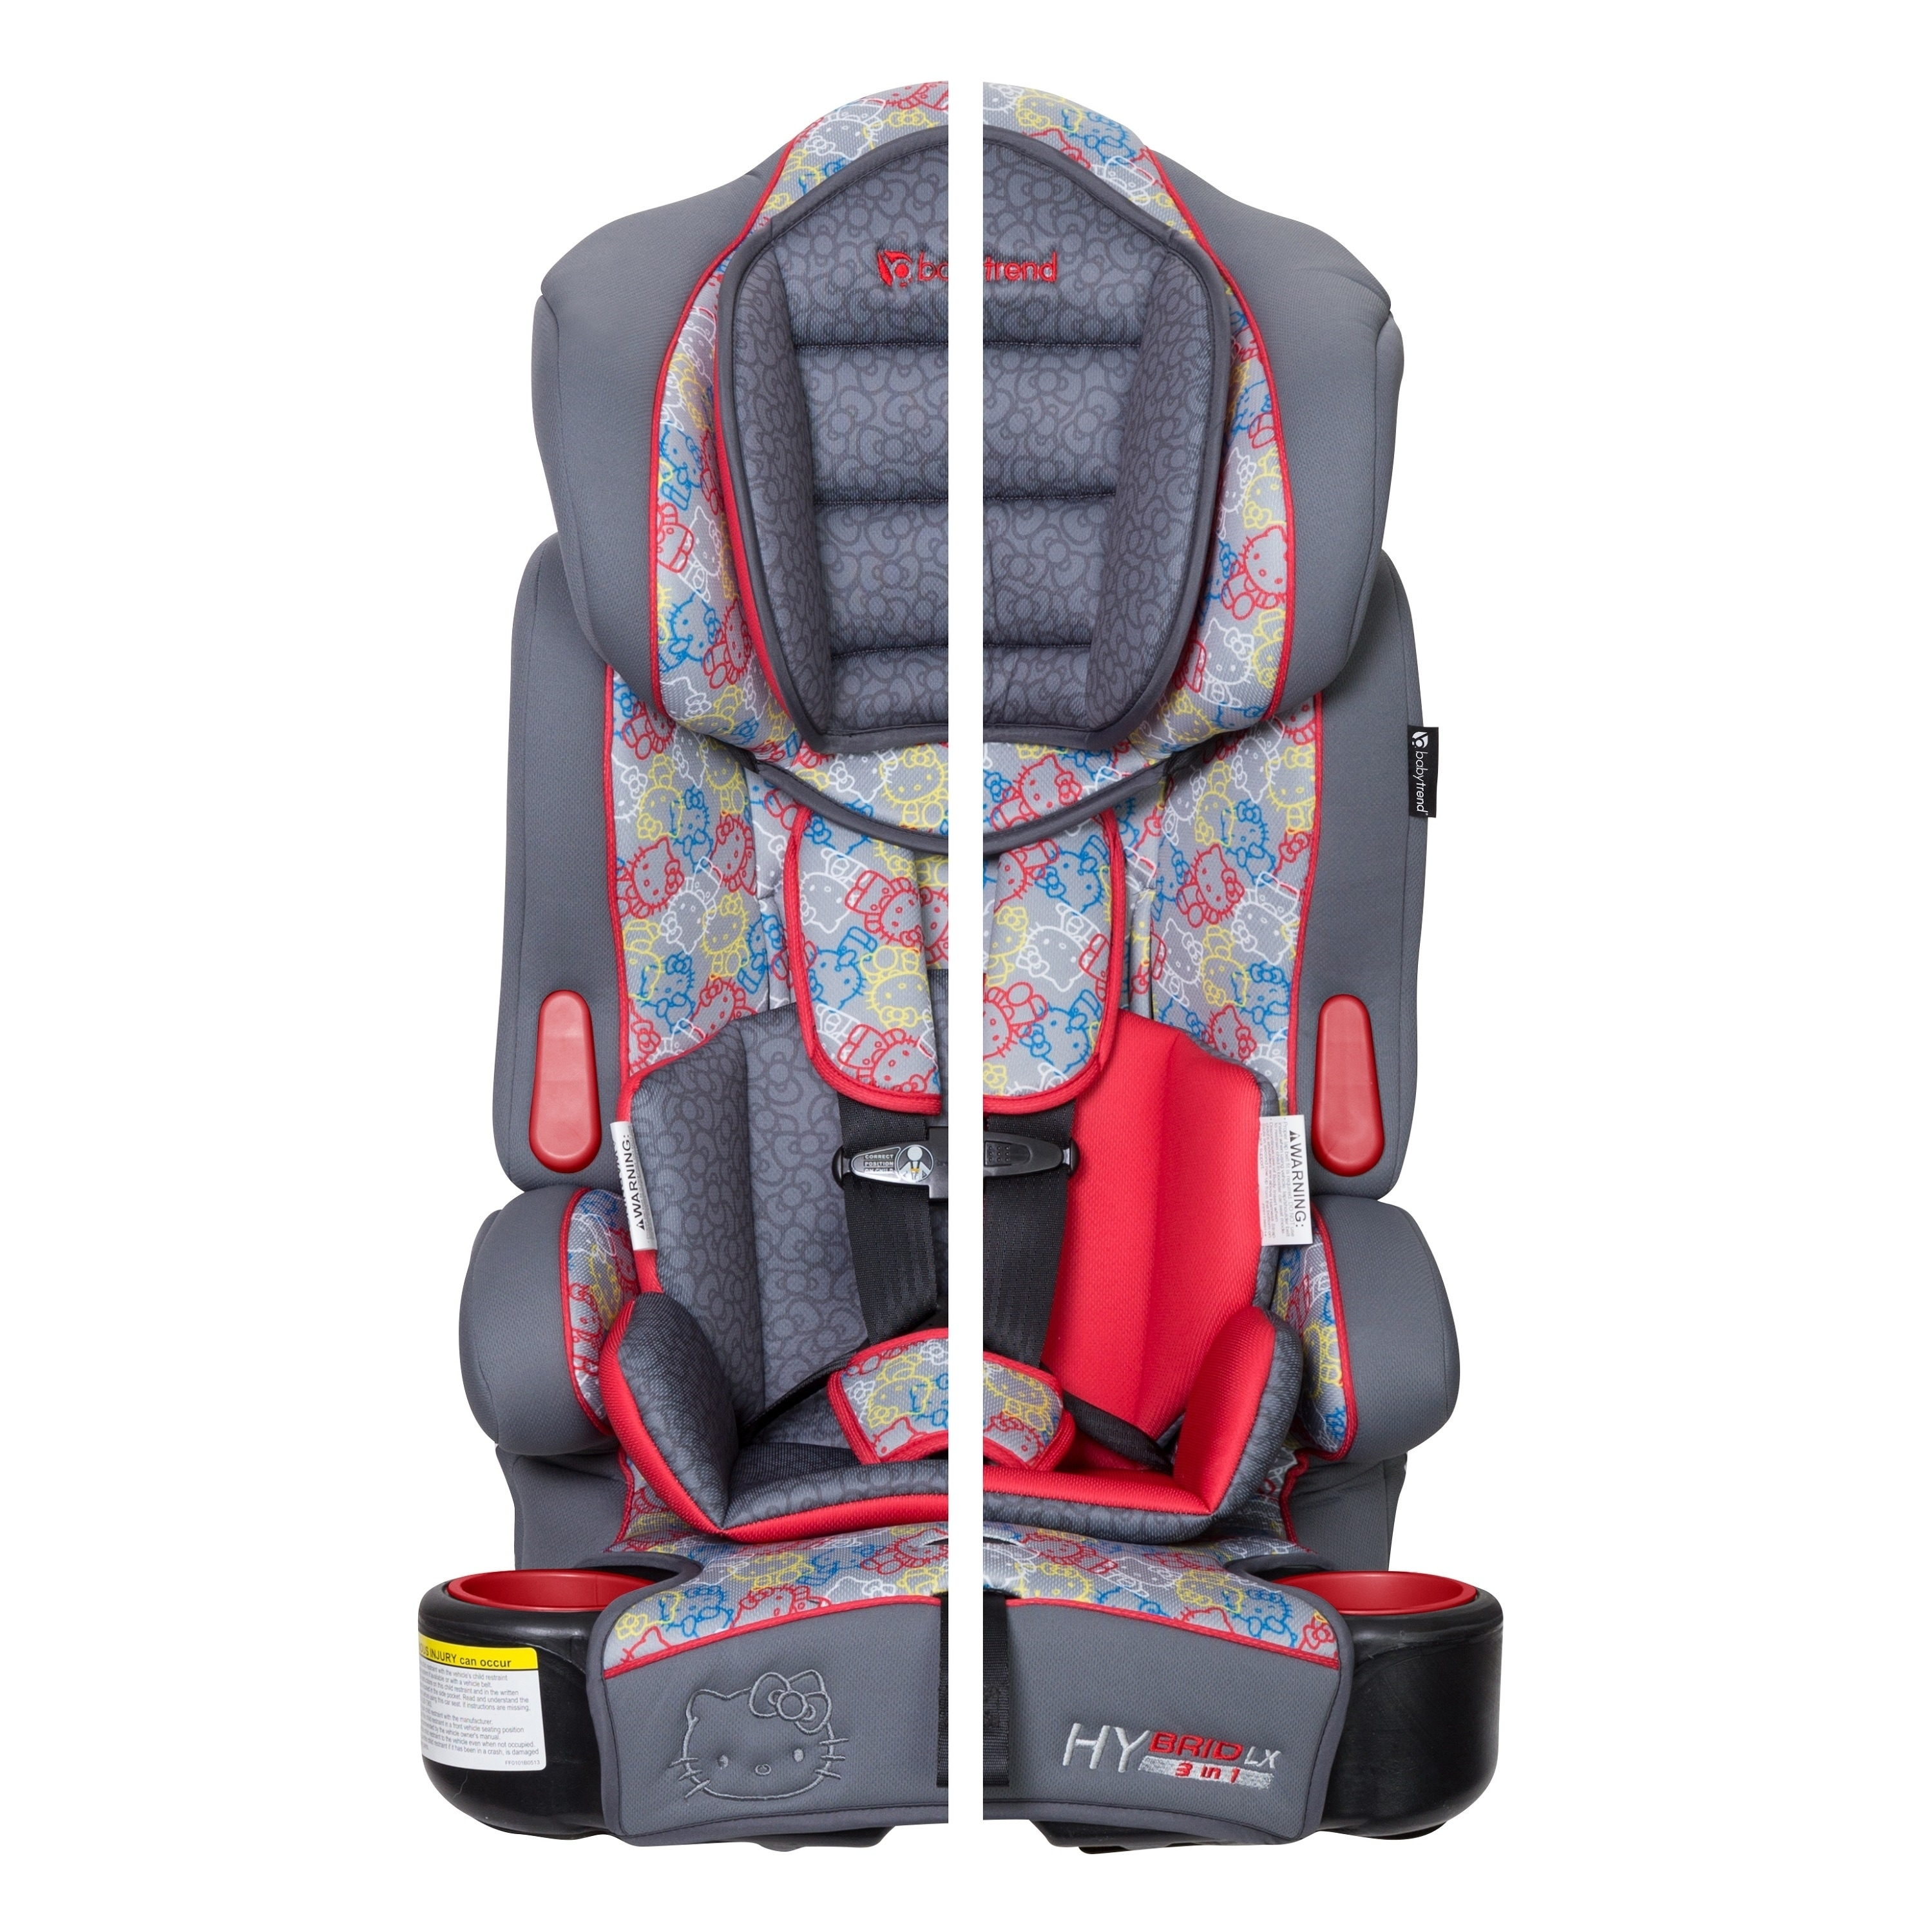 Baby Trend Hybrid Lx 3 In 1 Car Seat Hello Kitty Expressions Free Shipping Today 23128405